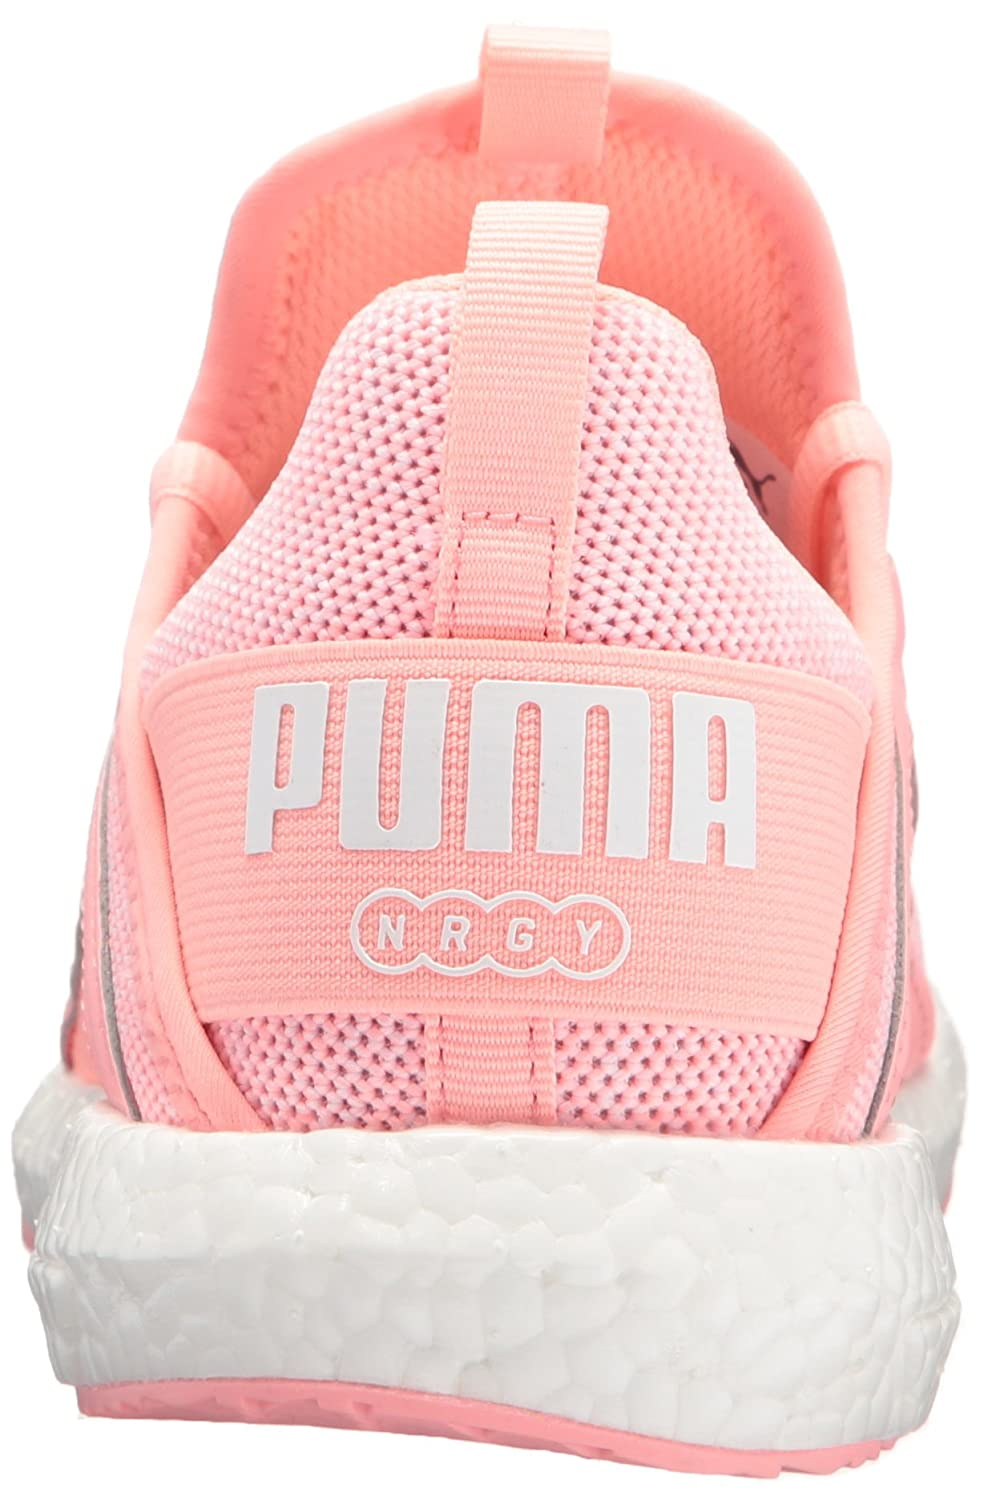 9cc22f9b0339 ... PUMA Women s Mega Nrgy Knit Wn US